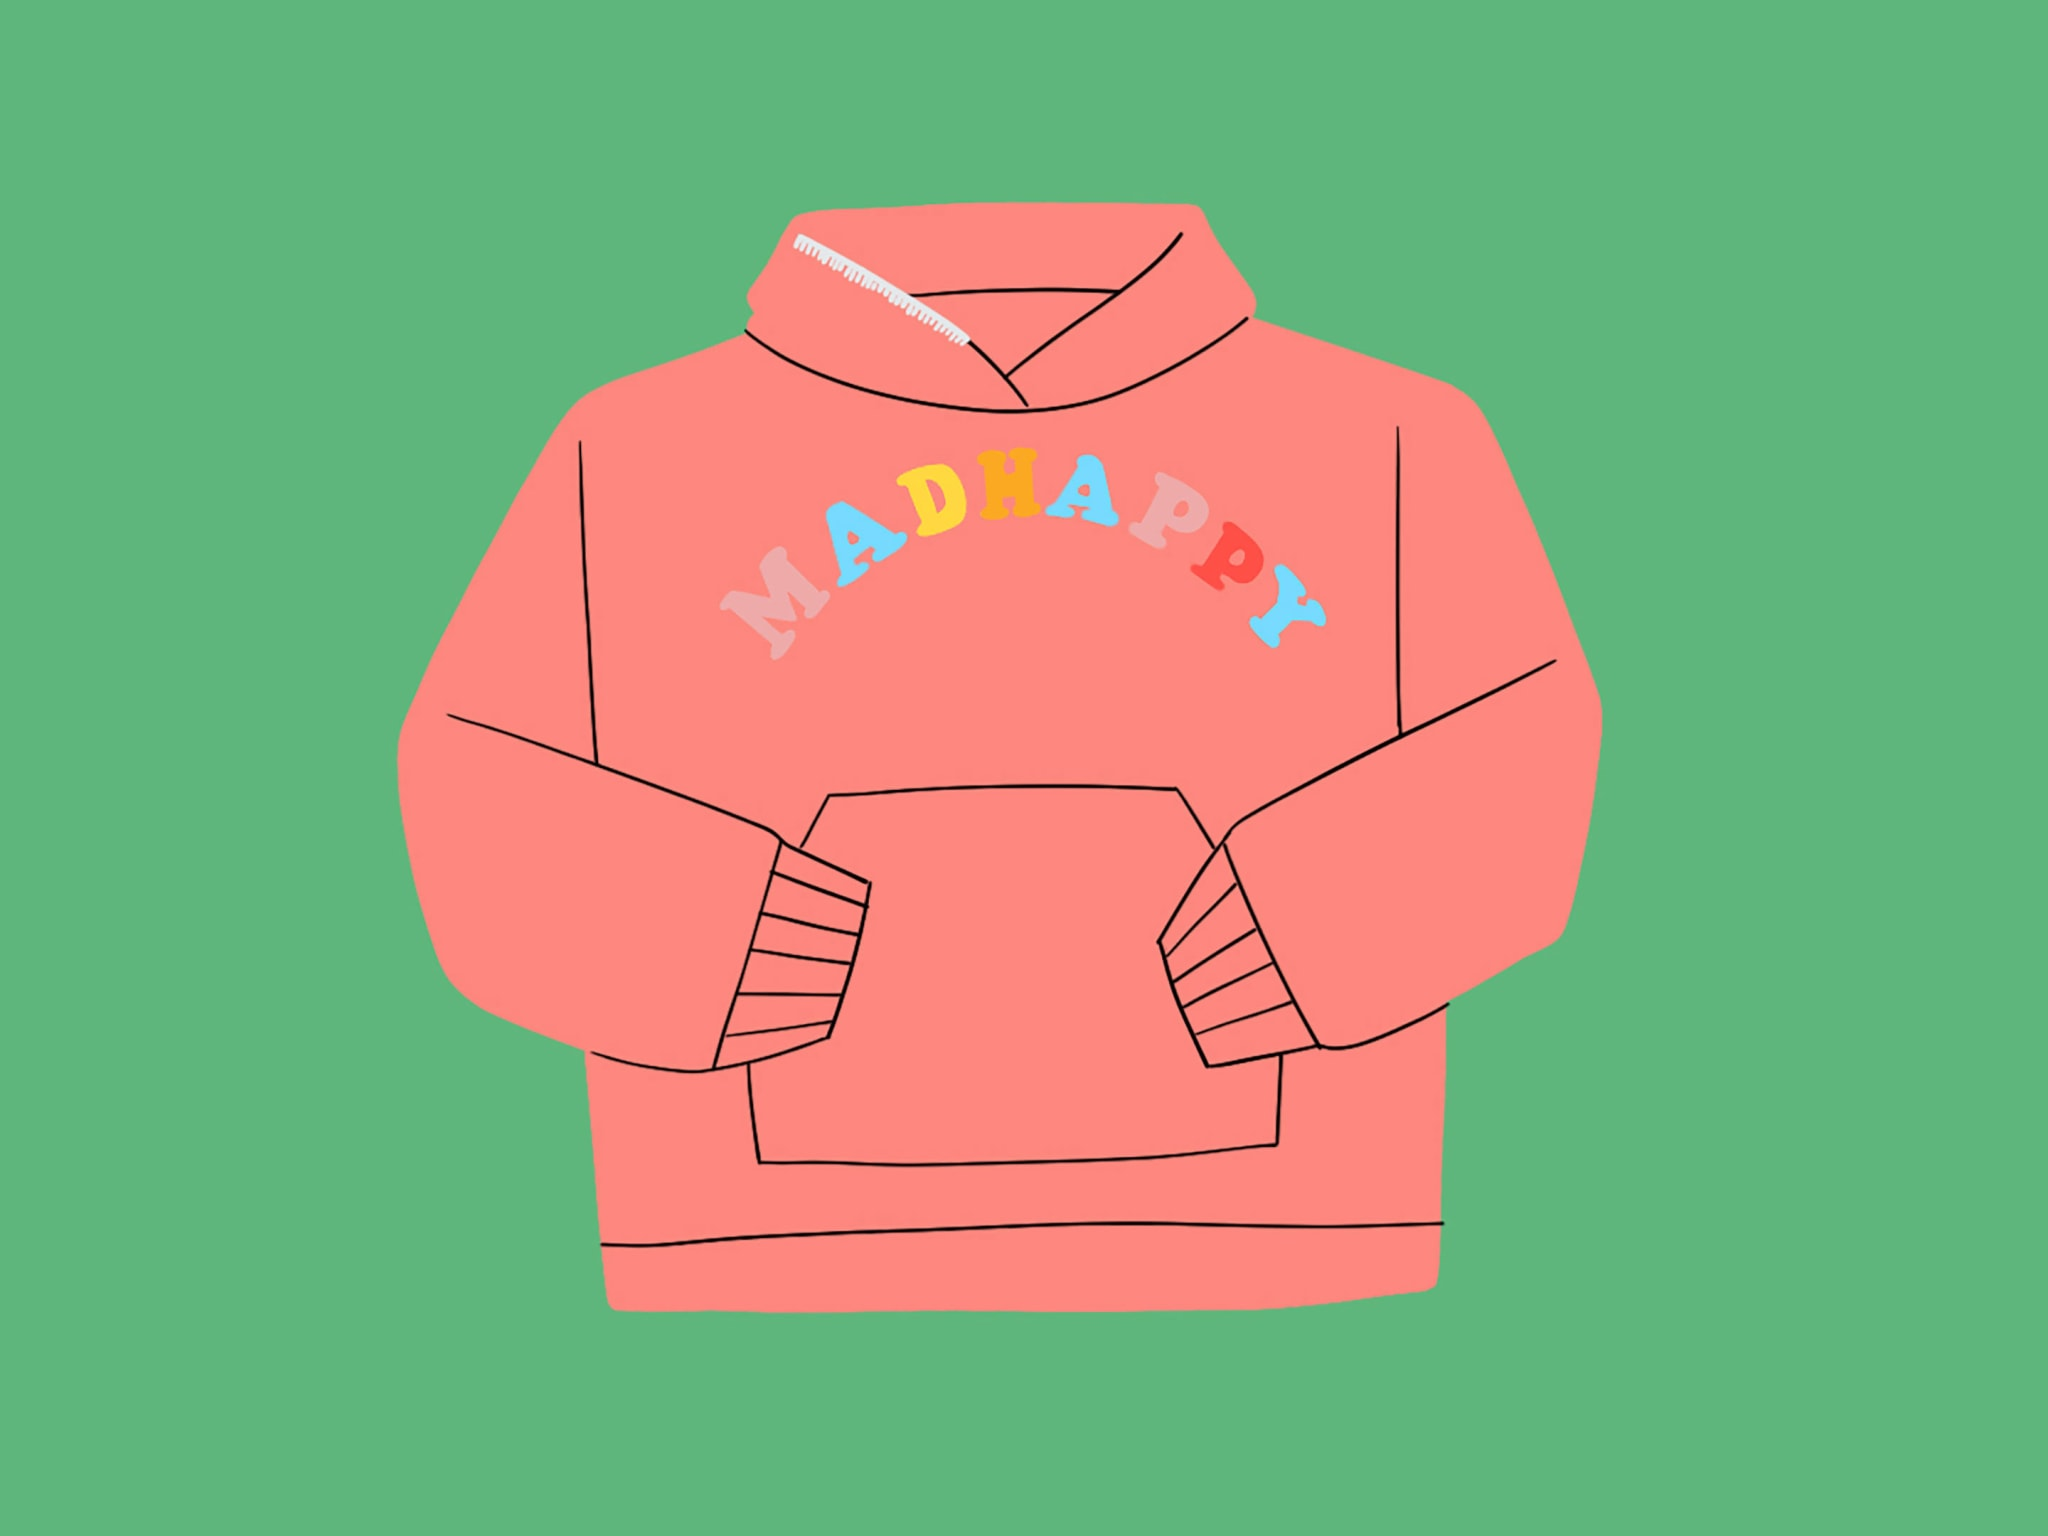 An illustration of a pink hoodie with Mad Happy written on it on a green background.